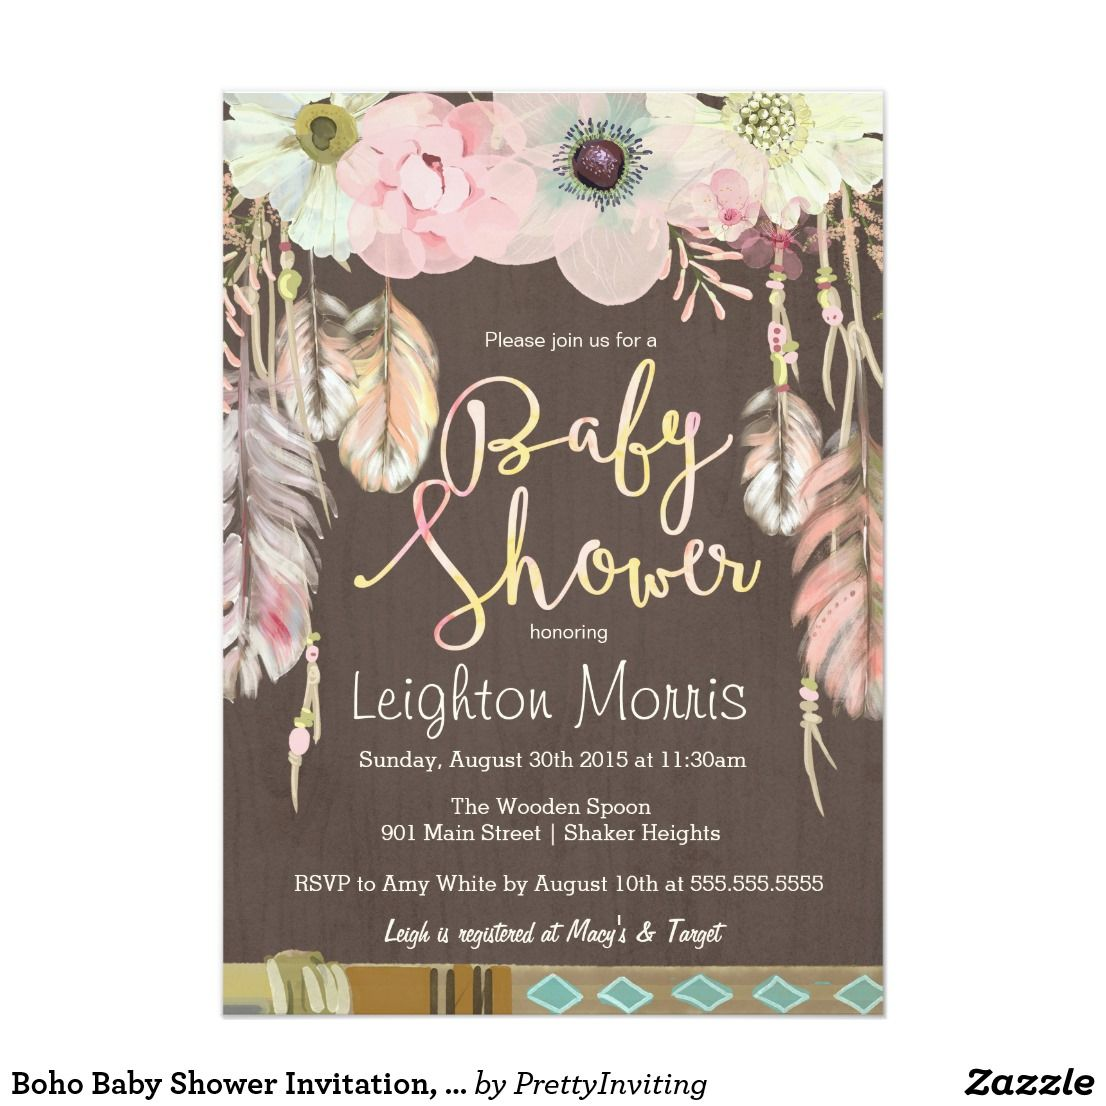 Boho Baby Shower Invitation, Tribal Feather Rustic Card Bohemian ...